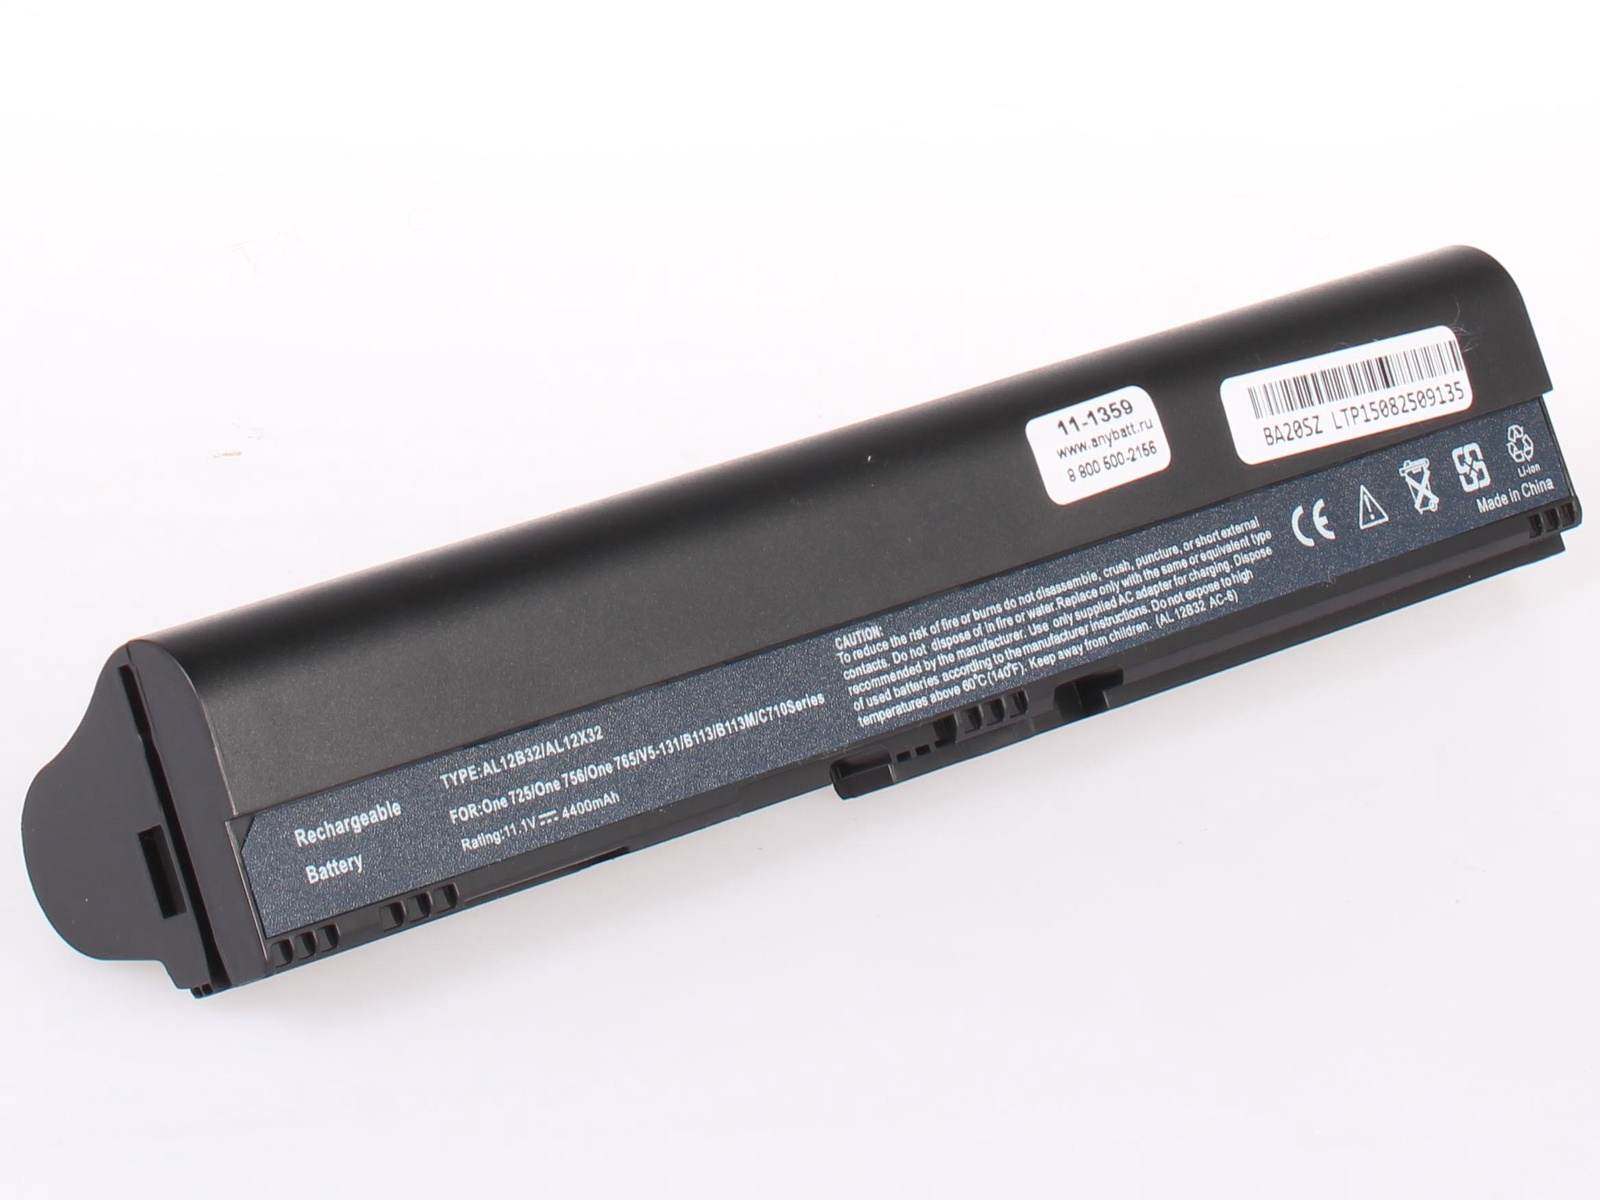 Аккумулятор для ноутбука AnyBatt для Acer Aspire V5-121-C72G32n, Aspire V5-571-323b4G32Mass, Aspire One AO756-877B1bb, Aspire One 756-877B1ss, Aspire V5-571PGB-33214GB50Mass, Aspire V5-431P-987B4G50Ma, Aspire V5-171-53314G50ass